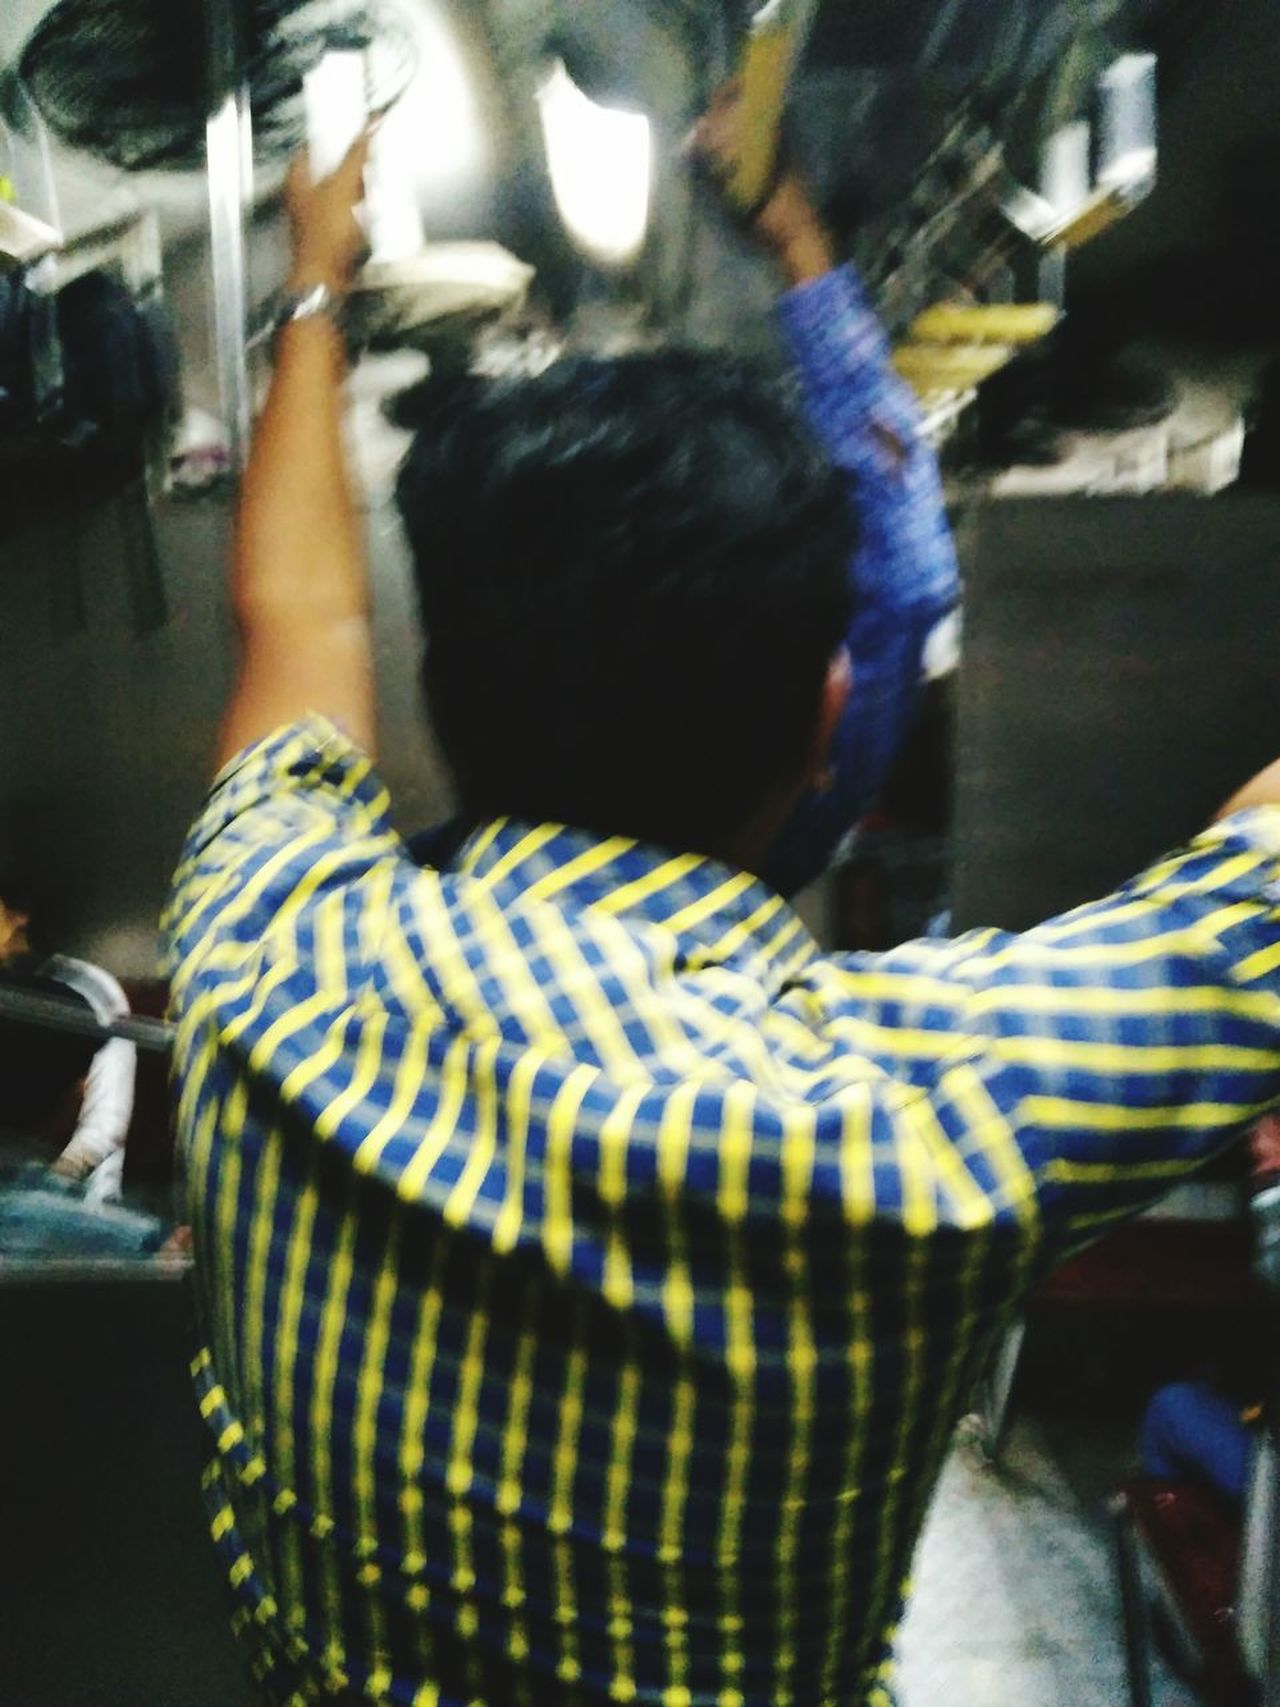 In Side A Train Compartment